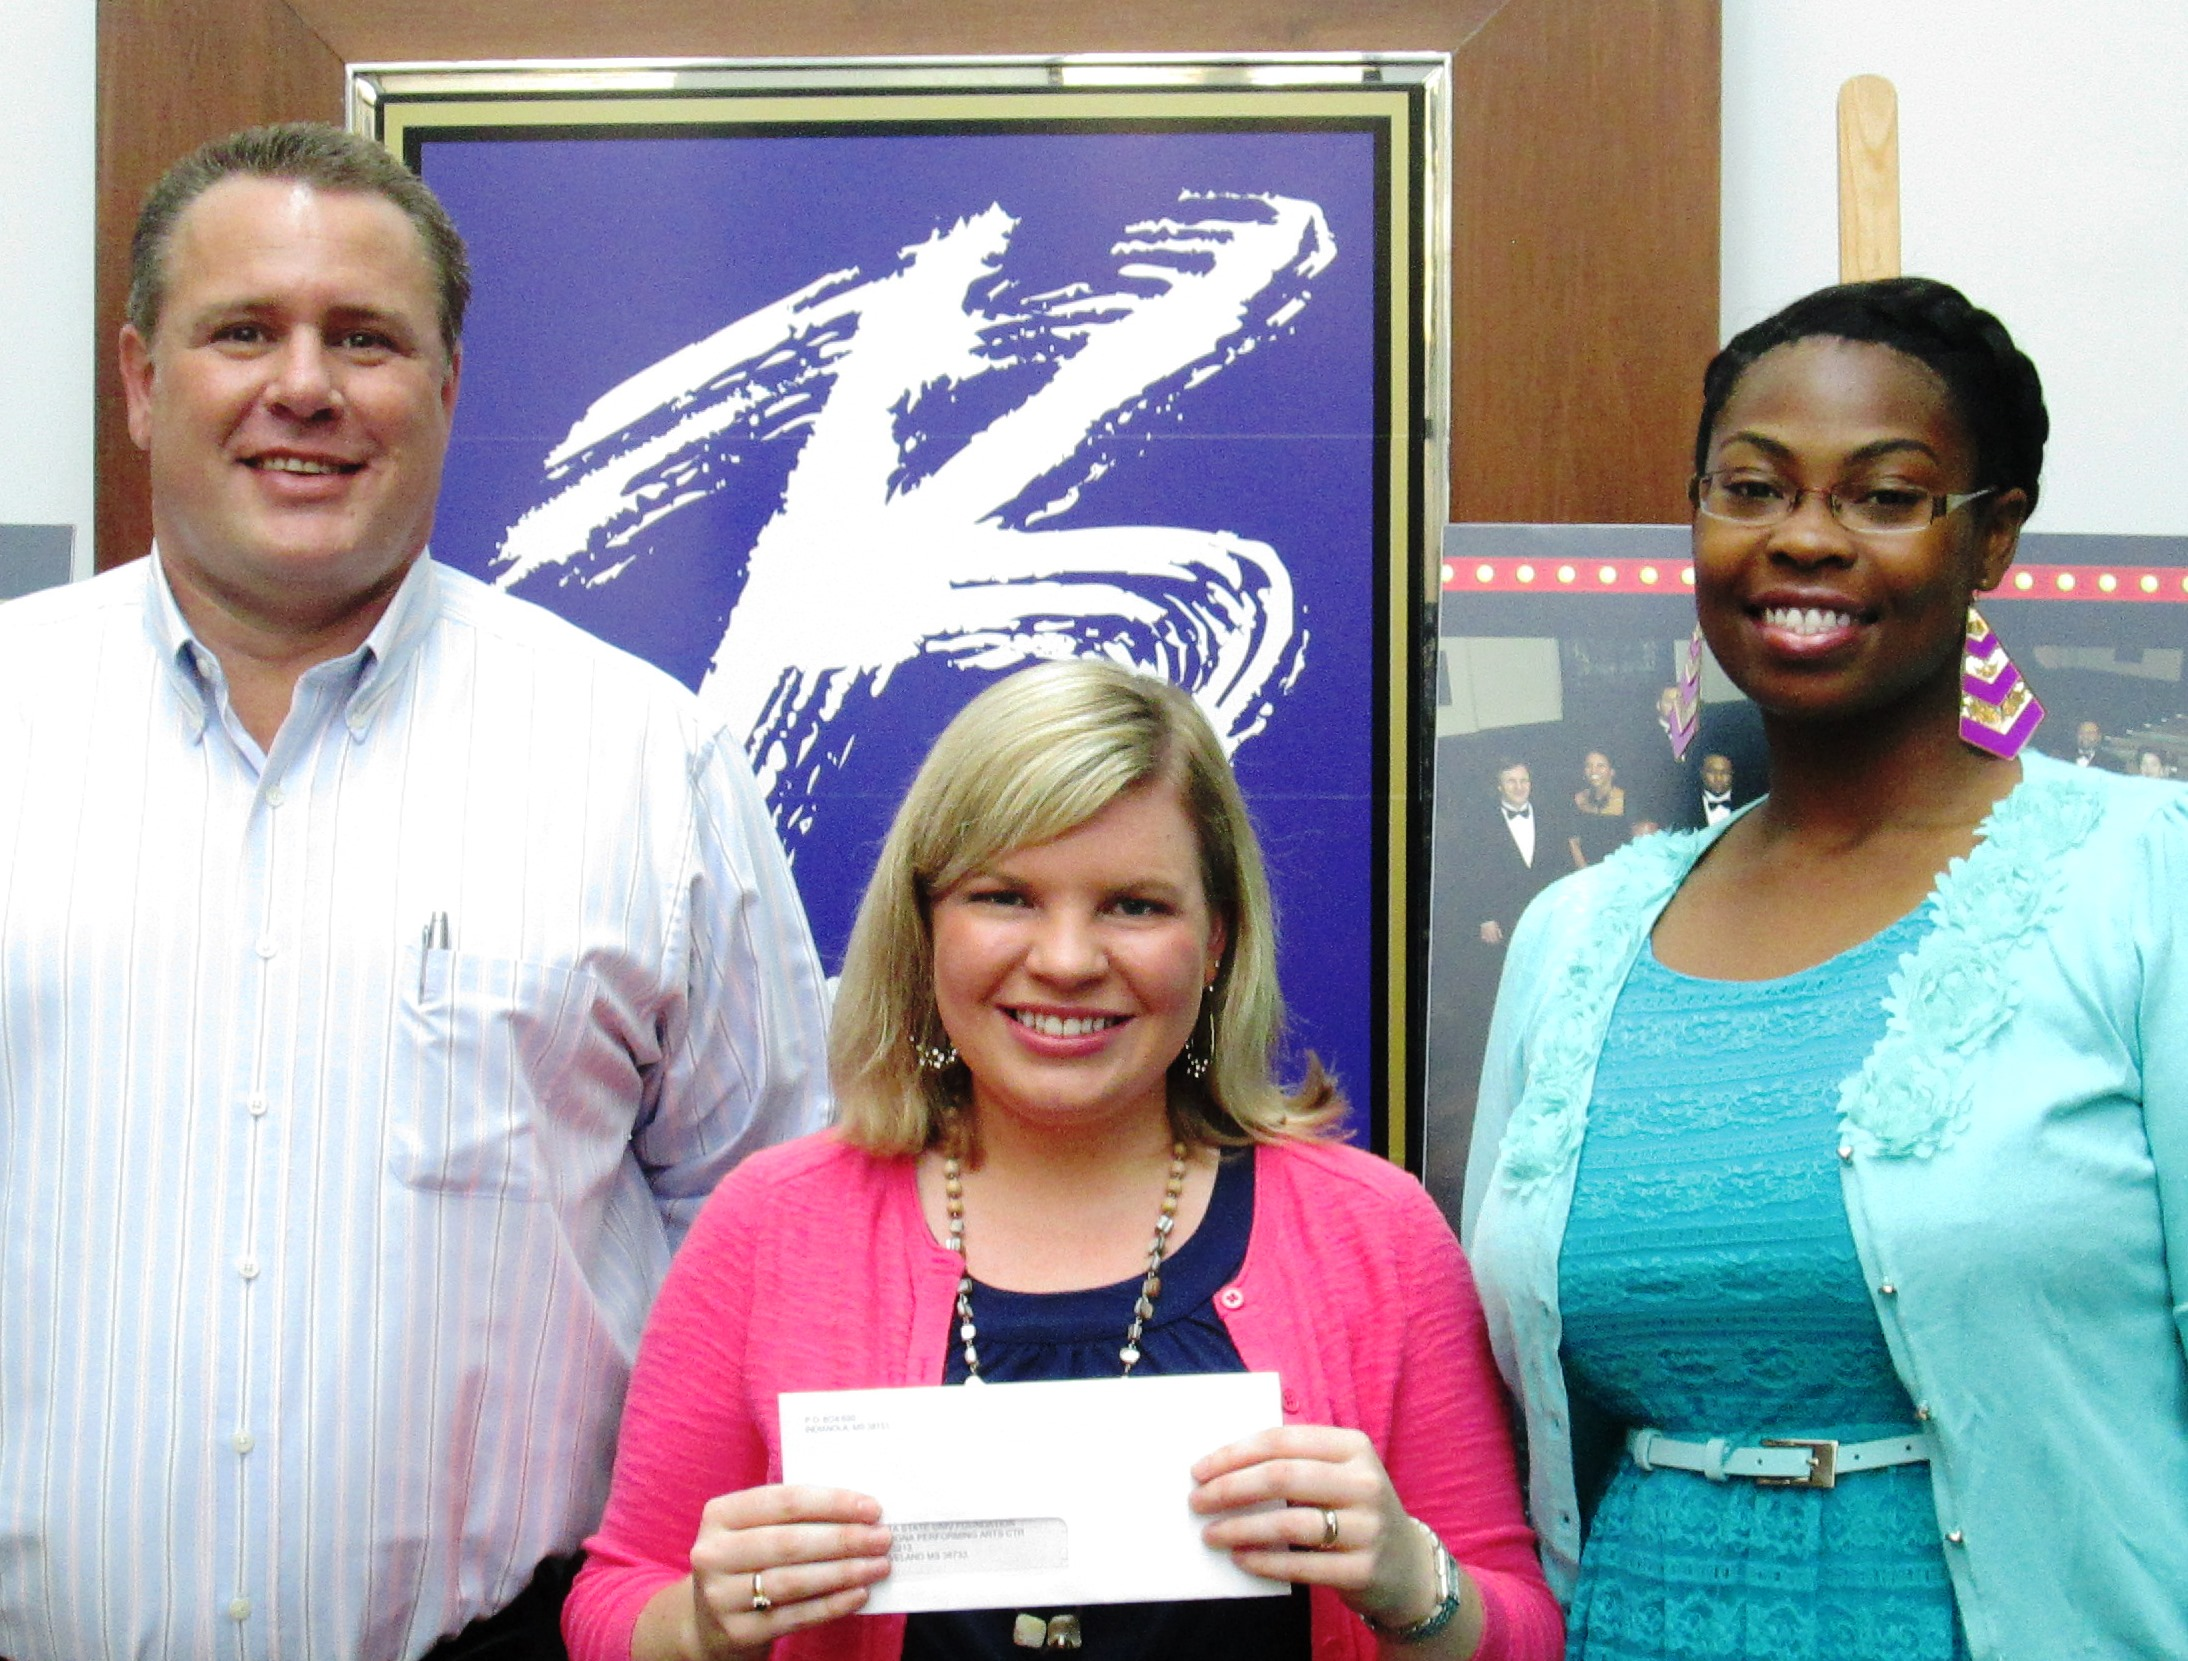 Damon Cranford (left), Director of Marketing, and Curlina Williams (right), Marketing Manager for Double Quick, Inc. present a check for Arts Education Fueled by Double Quick to Whitney Cummins (middle), BPAC Arts Education Coordinator